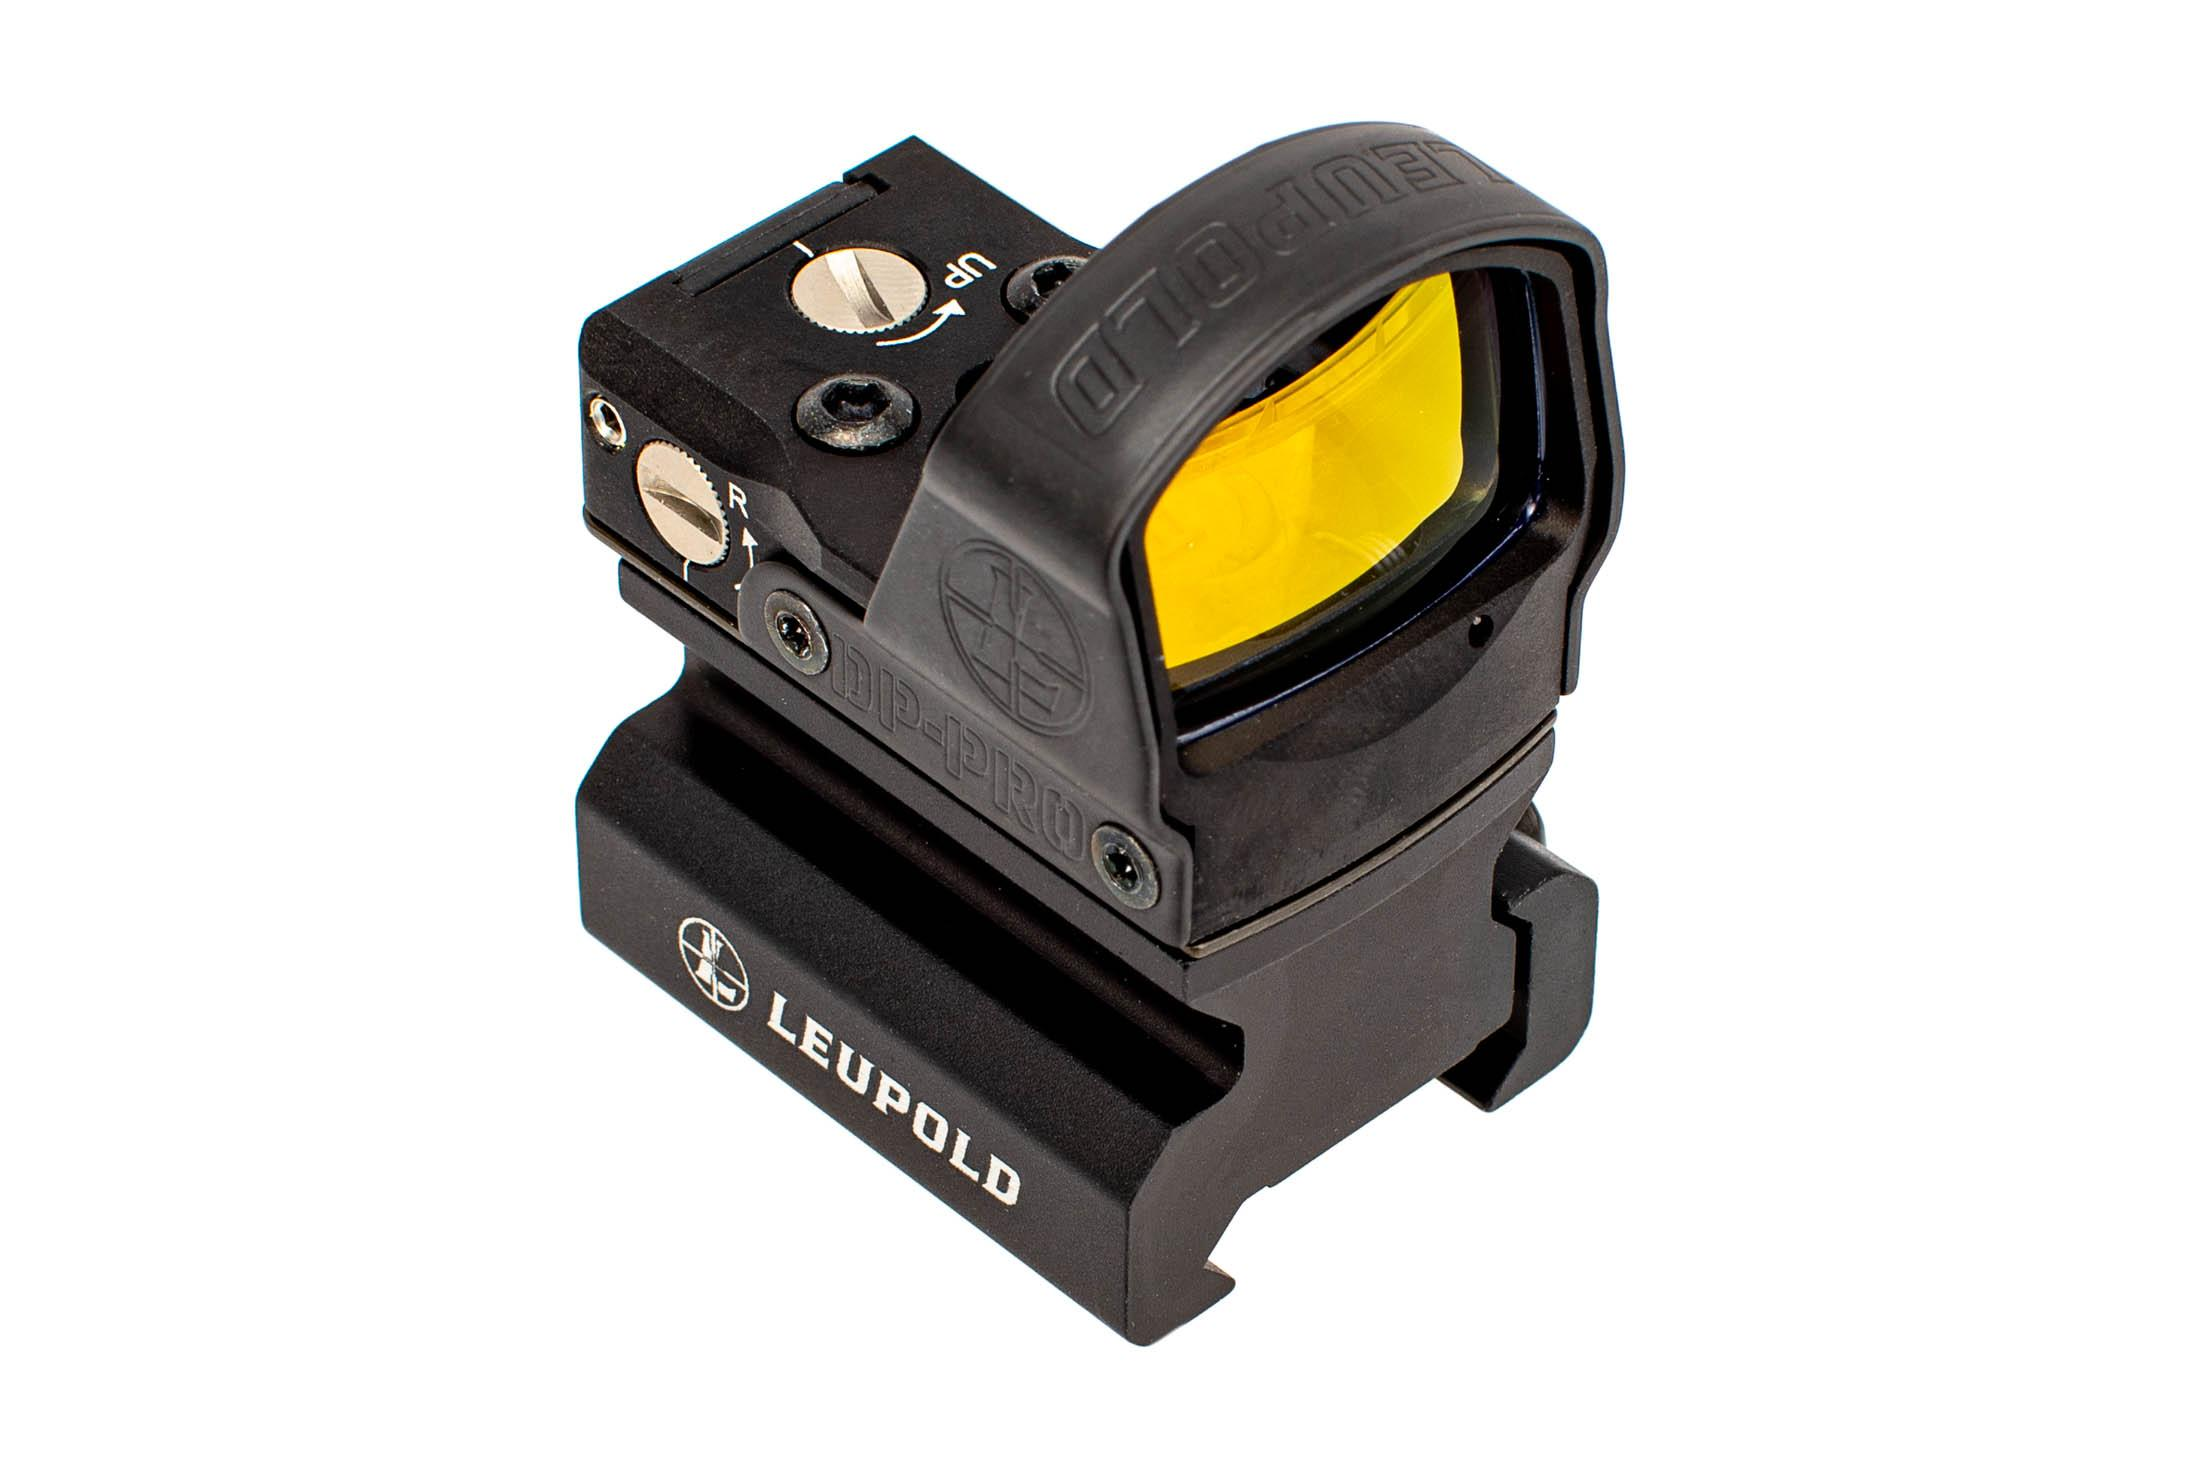 Leupold DeltaPoint PRO Reflex sight with 2.5 MOA reticle and AR-height mount